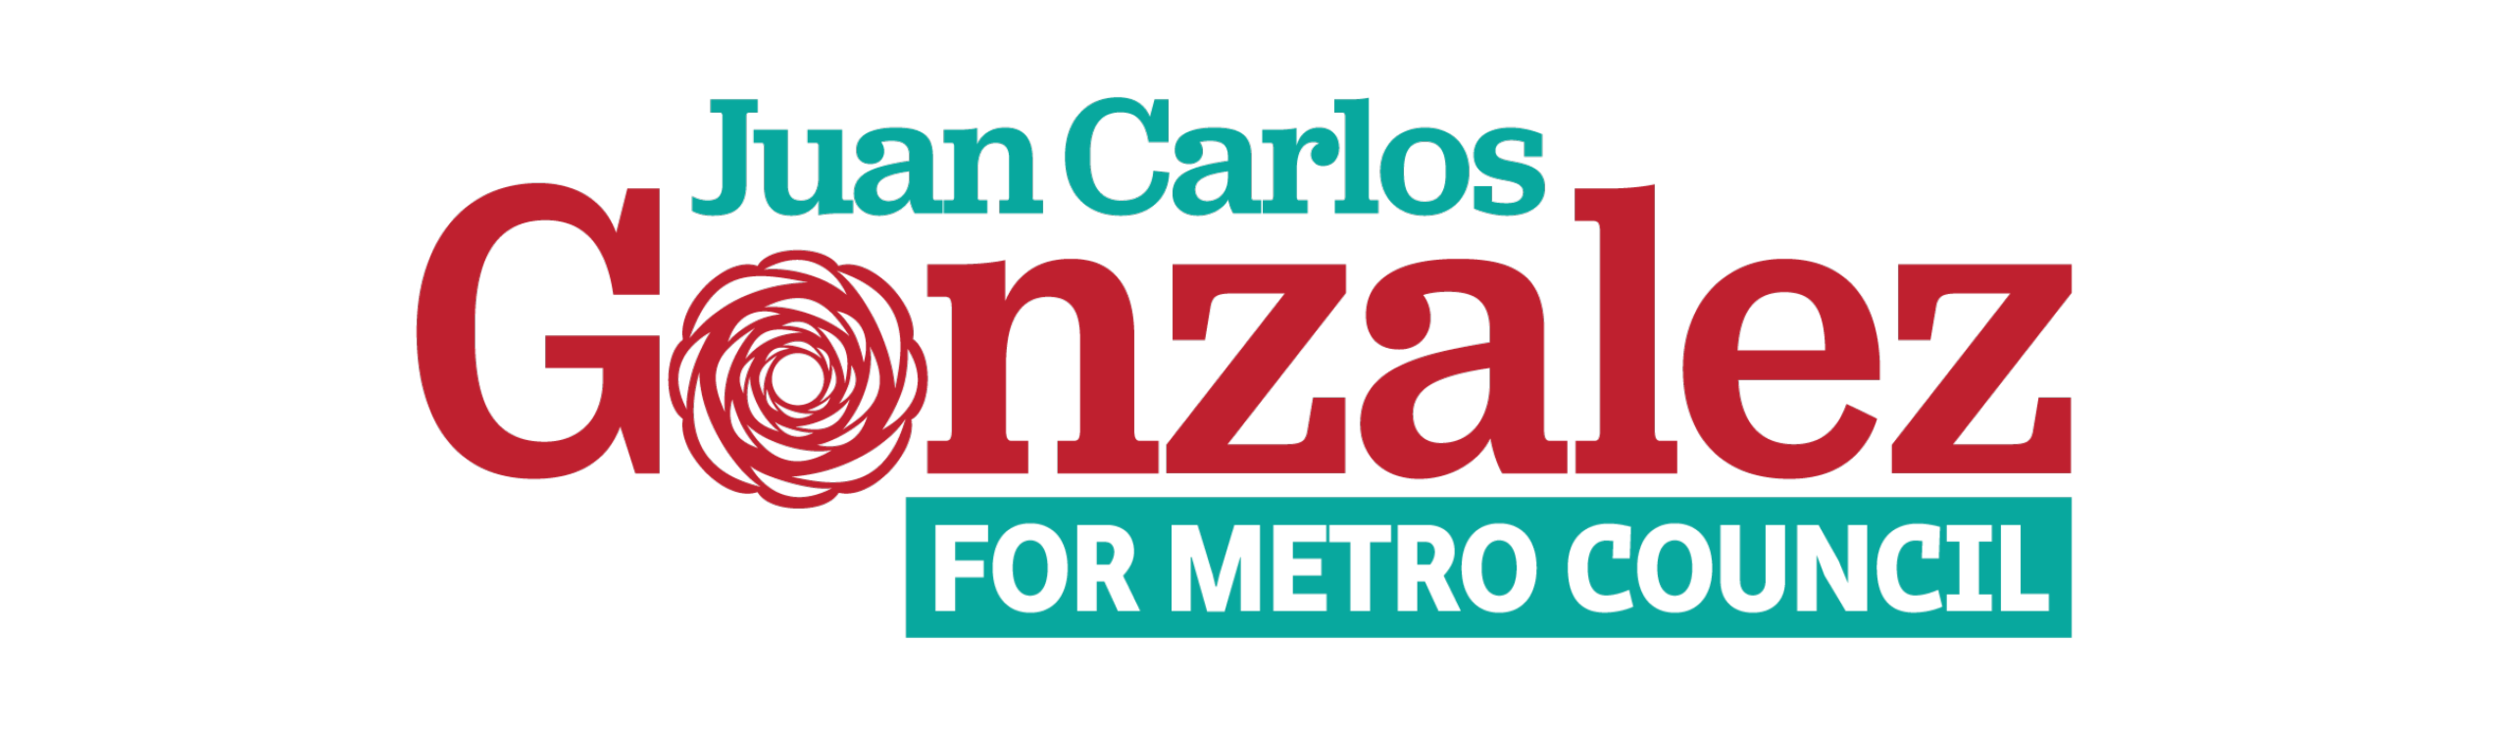 Juan Carlos Gonzalez for Metro Council